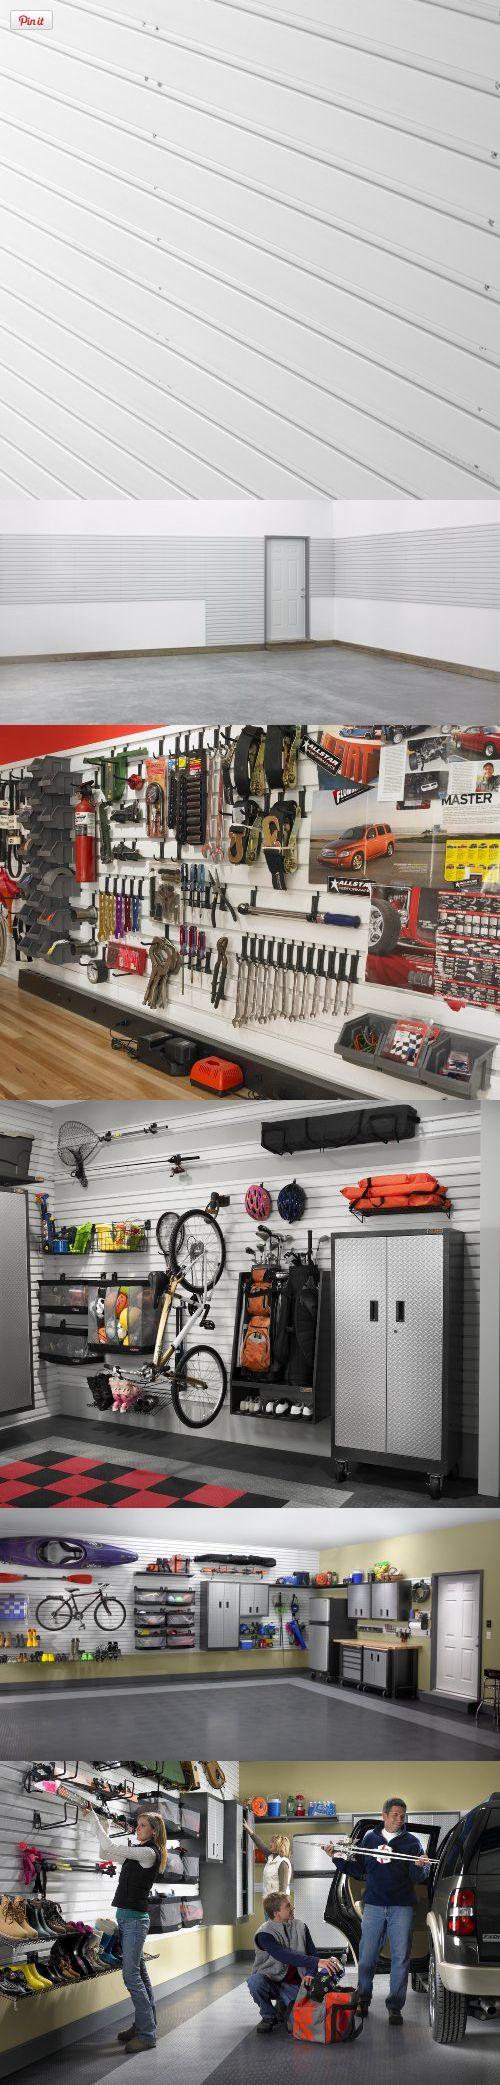 Gladiator GarageWorks GAWP082PMY GearWall Panels, 2-Pack, Gladiator GearWall panels are the ultimate in garage transformation--a heavy-duty, patent-pending slot-wall system designed to reclaim the floor and maximize storage capacity and flexibility., #Tools & Hardware, #Hardware